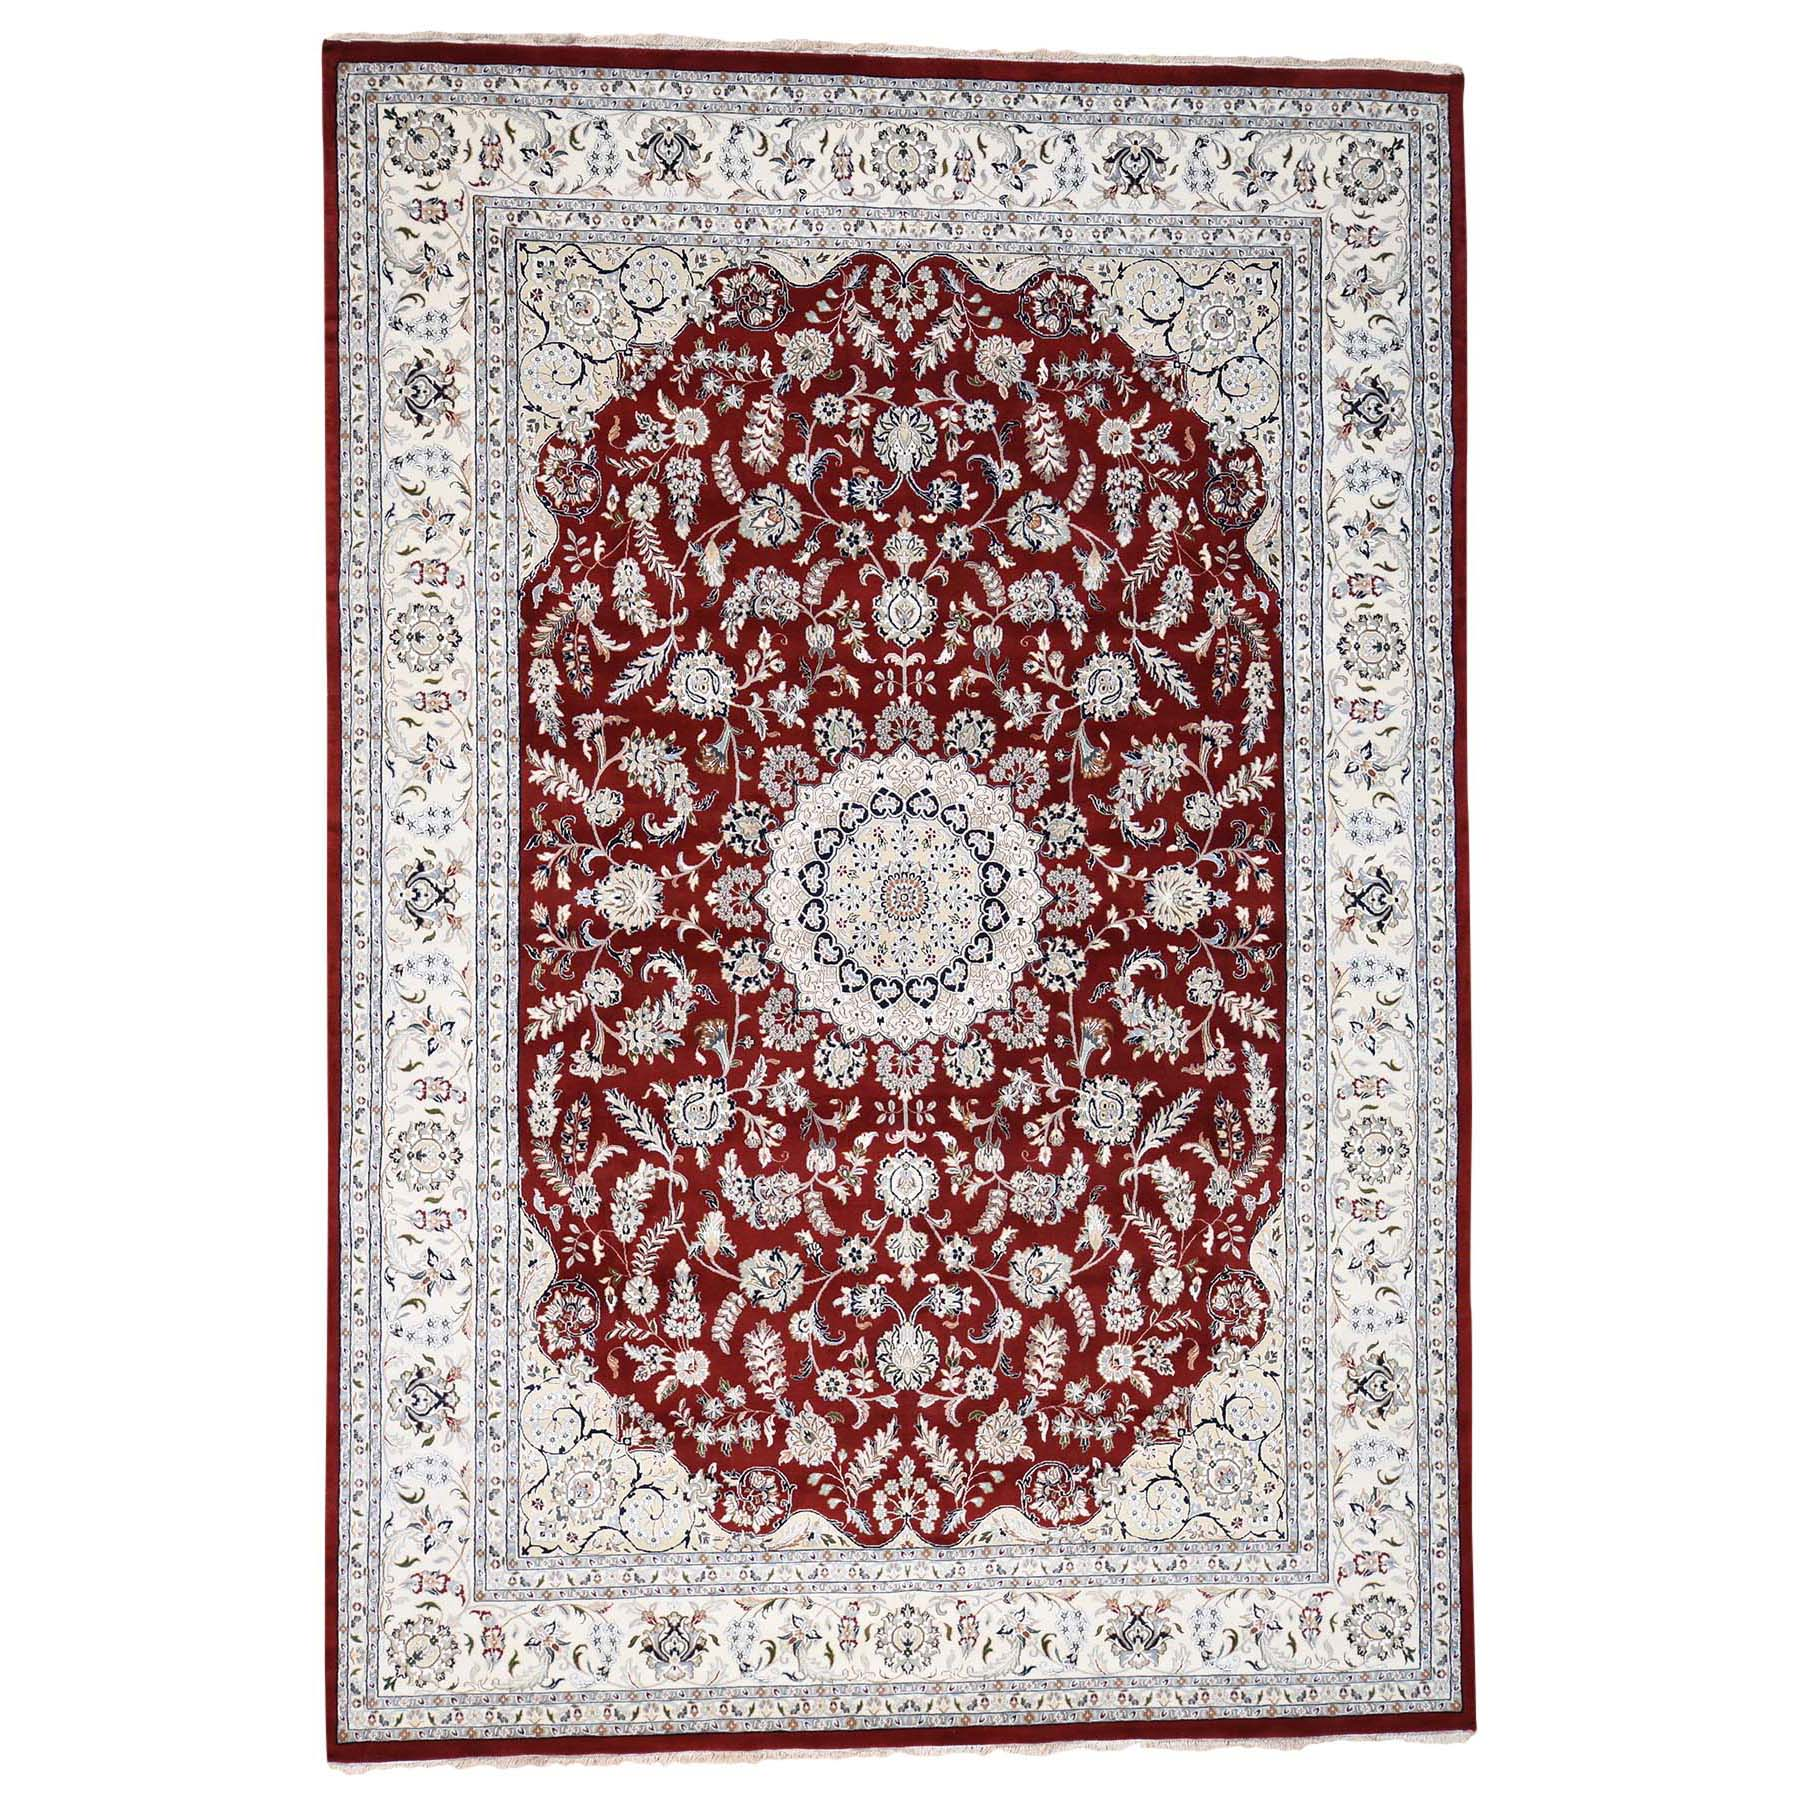 Pirniakan Collection Hand Knotted Red Rug No: 0192262